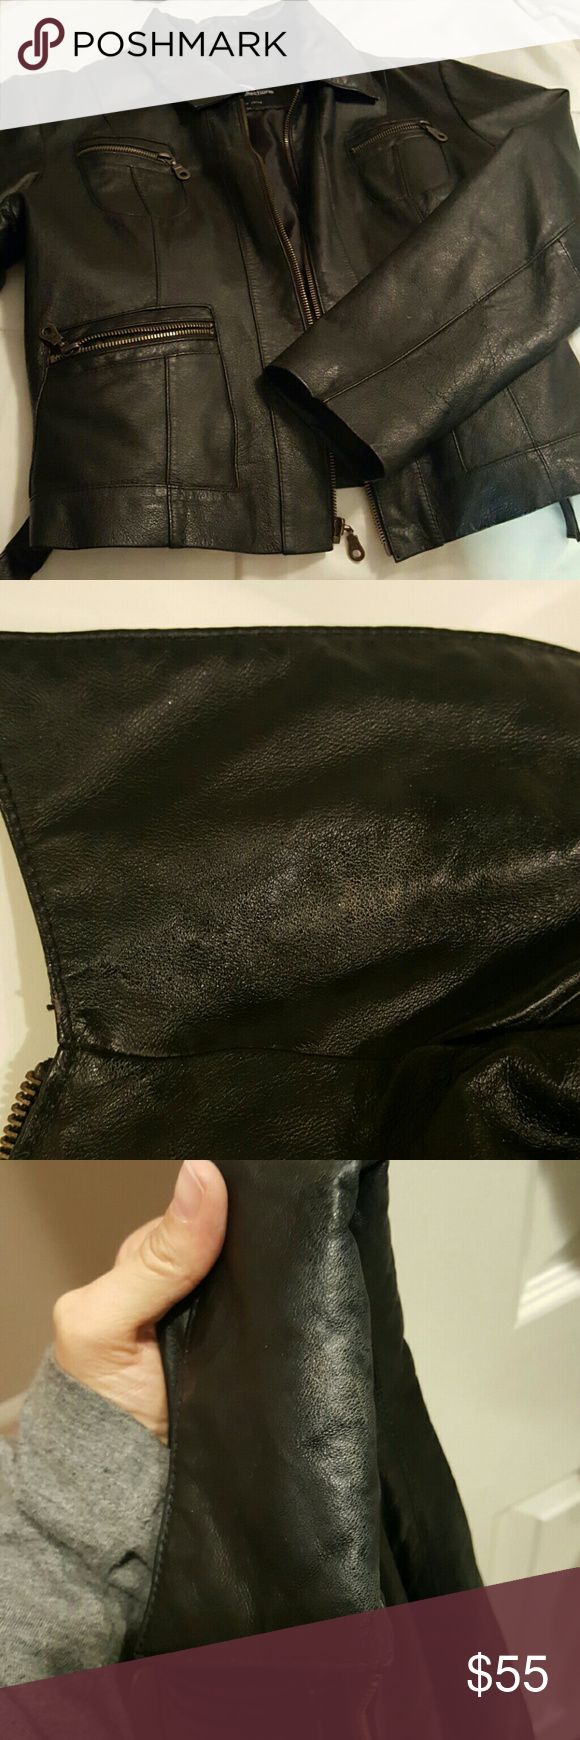 Black leather jacket Used black leather jacket shell 100% leather some visible wear on the collar where it folds over uhc collections Jackets & Coats Utility Jackets